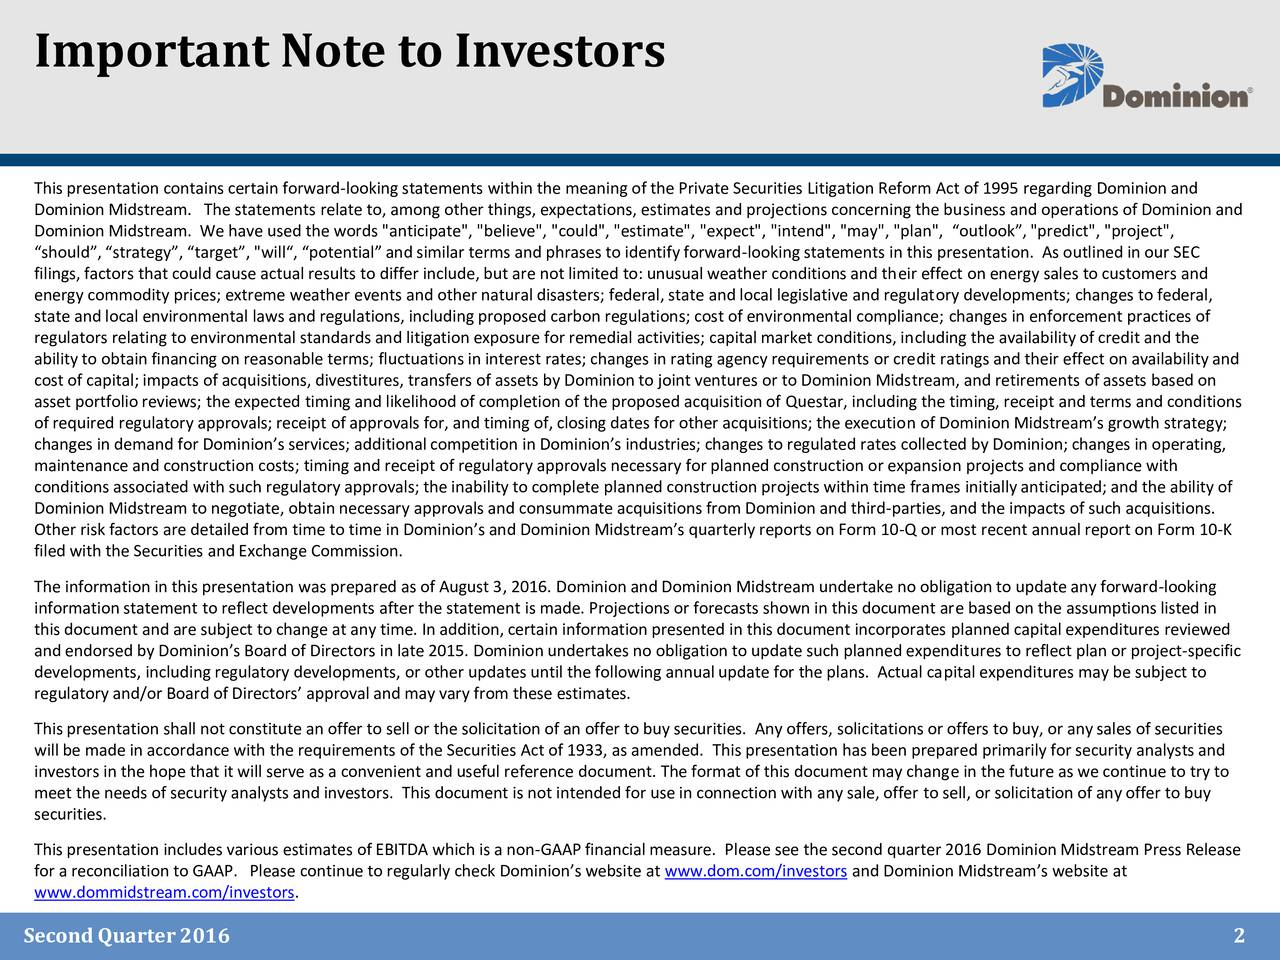 """This presentation contains certain forward-looking statements within the meaning of the Private Securities Litigation Reform Act of 1995 regarding Dominion and Dominion Midstream. The statements relate to, among other things, expectations, estimates and projections concerning the business and operations of Dominion and Dominion Midstream. We have used the words """"anticipate"""", """"believe"""", """"could"""", """"estimate"""", """"expect"""", """"intend"""", """"may"""", """"plan"""", outlook, """"predict"""", """"project"""", should, strategy, target, """"will, potential and similar terms and phrases to identify forward-looking statements in this presentation. As outlined in our SEC filings, factors that could cause actual results to differ include, but are not limited to: unusual weather conditions and their effect on energy sales to customers and energy commodity prices; extreme weather events and other natural disasters; federal, state and local legislative and regulatory developments; changes to federal, state and local environmental laws and regulations, including proposed carbon regulations; cost of environmental compliance; changes in enforcement practices of regulators relating to environmental standards and litigation exposure for remedial activities; capital market conditions, including the availability of credit and the ability to obtain financing on reasonable terms; fluctuations in interest rates; changes in rating agency requirements or credit ratings and their effect on availability and cost of capital; impacts of acquisitions, divestitures, transfers of assets by Dominion to joint ventures or to Dominion Midstream, and retirements of assets based on asset portfolio reviews; the expected timing and likelihood of completion of the proposed acquisition of Questar, including the timing, receipt and terms and conditions of required regulatory approvals; receipt of approvals for, and timing of, closing dates for other acquisitions; the execution of Dominion Midstreams growth strategy; changes in demand for Dominio"""